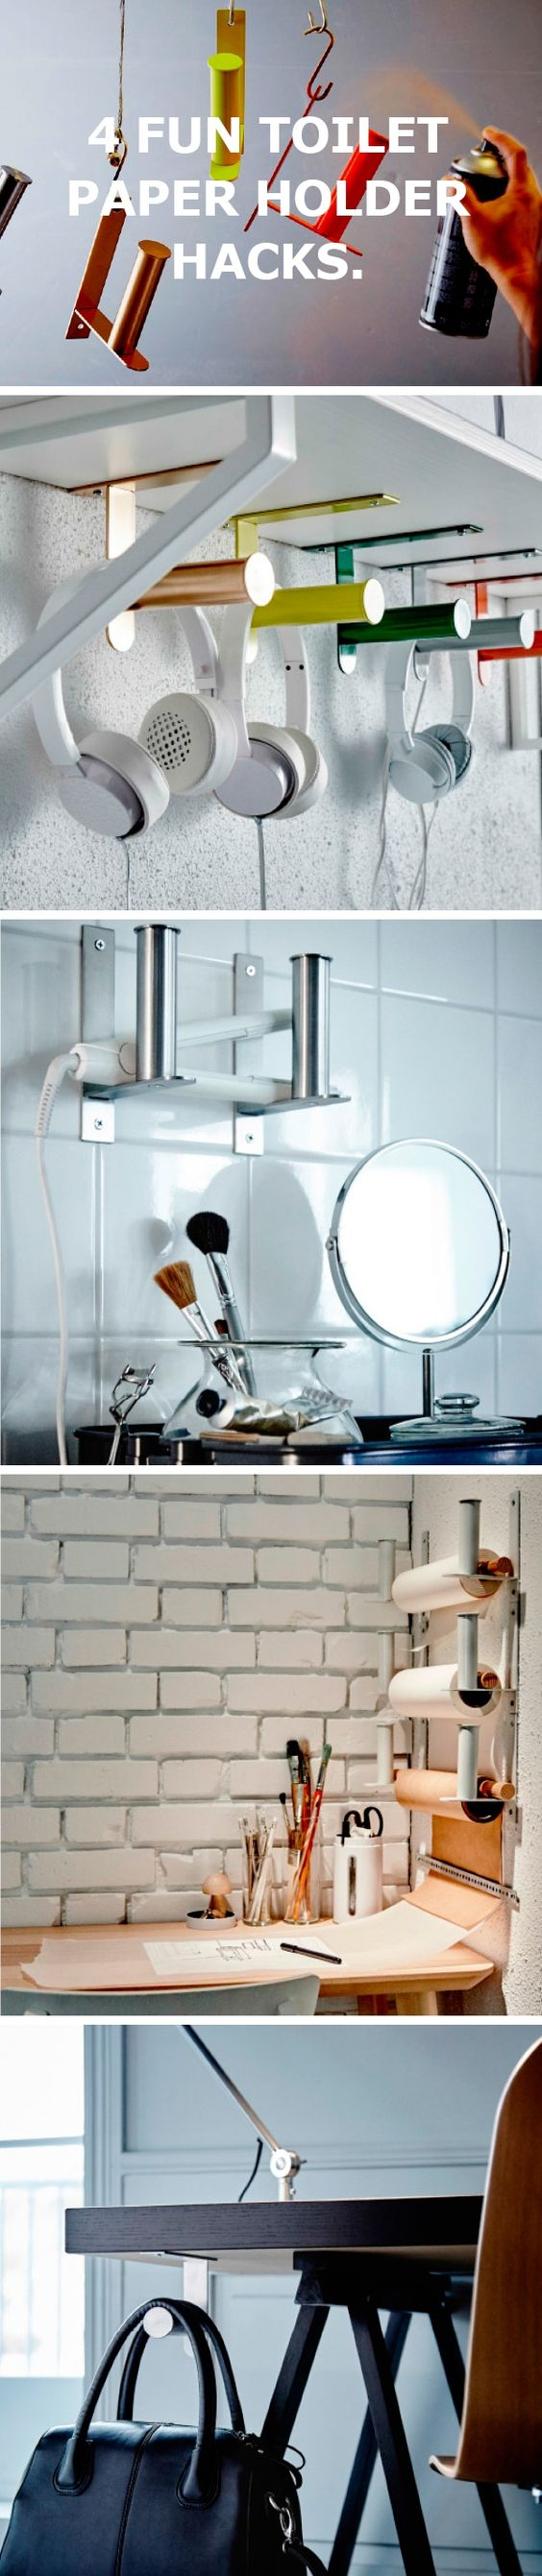 Ikea Drehstuhl Markus Garantie ~ GRUNDTAL Toilet roll holder, stainless steel  Paper Holders, Toilet